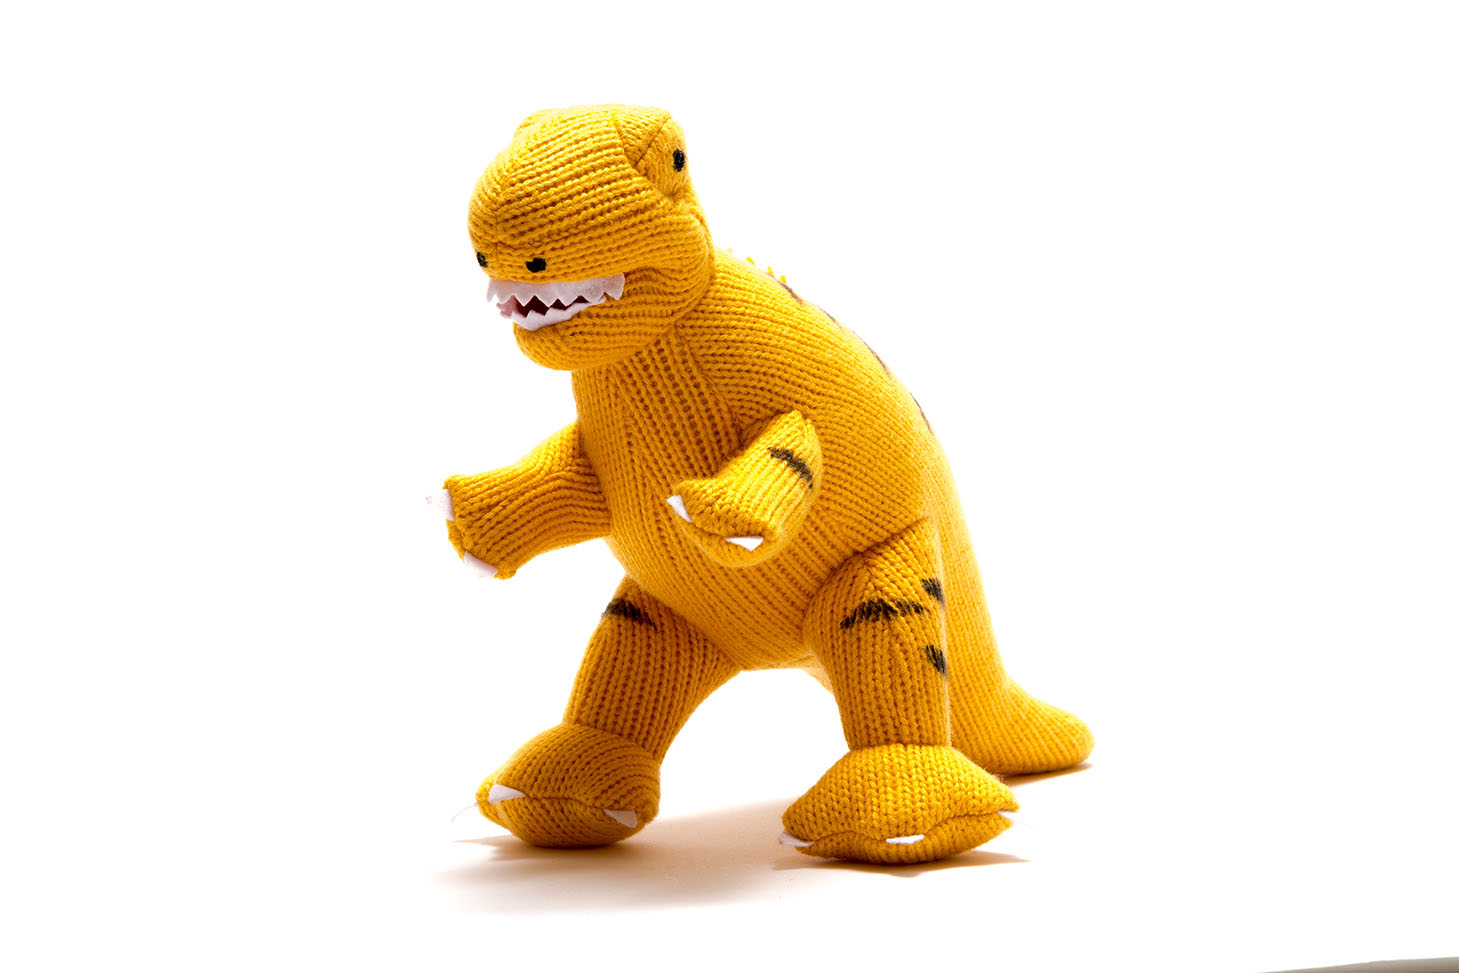 Yellow knitted T Rex dinosaur soft toy with white jagged teeth